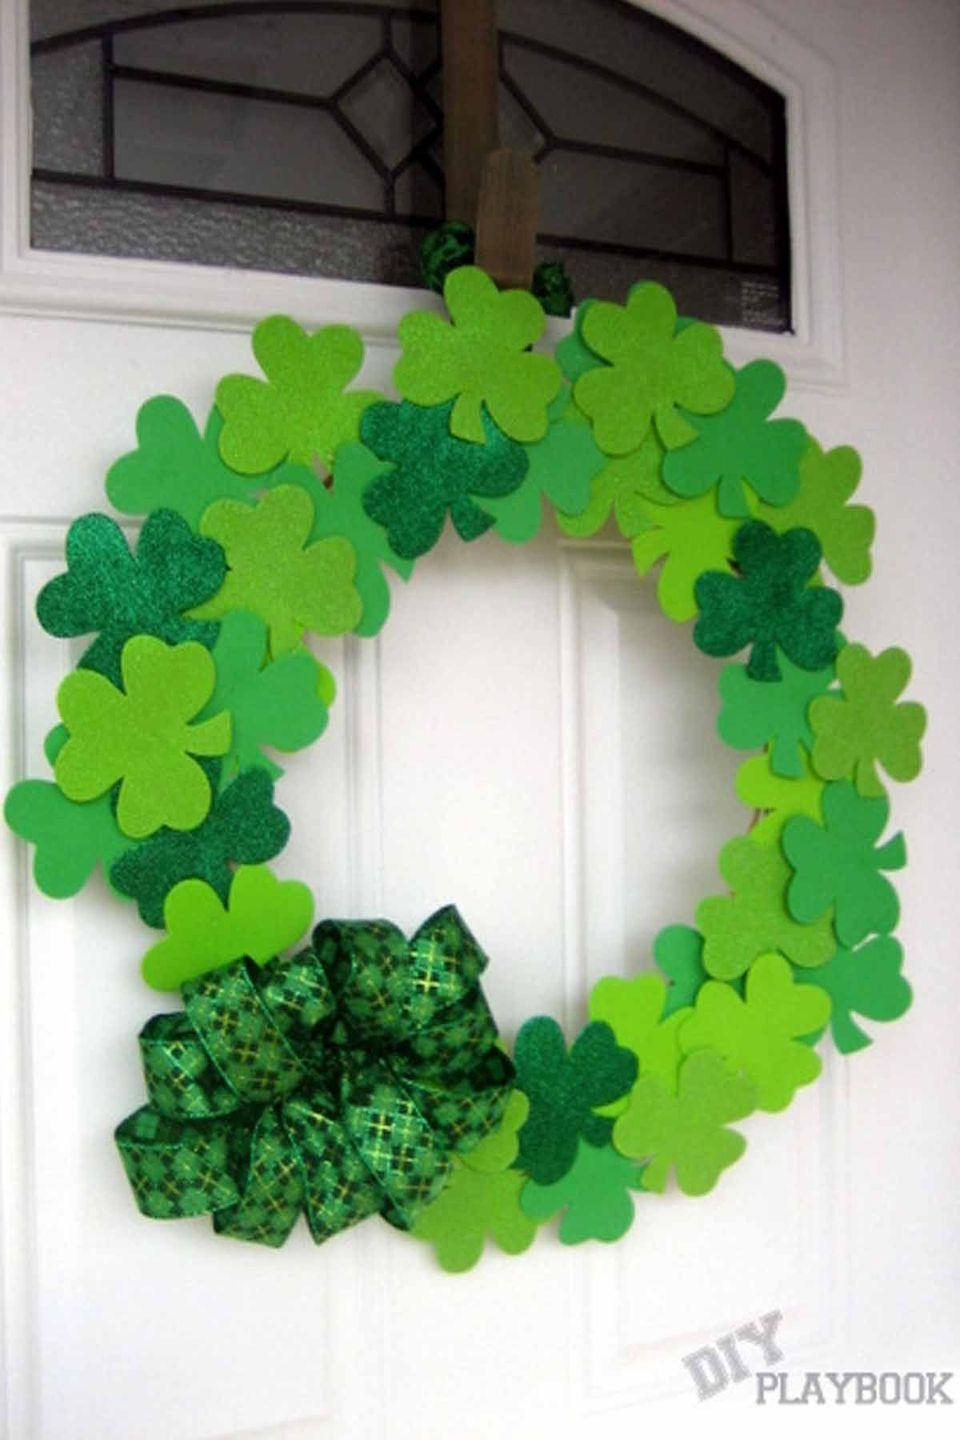 """<p>Everything you need to make this <a href=""""https://www.womansday.com/home/decorating/g1823/front-door-decor-countryliving/"""" rel=""""nofollow noopener"""" target=""""_blank"""" data-ylk=""""slk:beautiful green wreath"""" class=""""link rapid-noclick-resp"""">beautiful green wreath</a> can be found at the Dollar Store.</p><p><em>Get the tutorial at <a href=""""http://thediyplaybook.com/2013/03/dollar-tree-challenge.html"""" rel=""""nofollow noopener"""" target=""""_blank"""" data-ylk=""""slk:The DIY Playbook"""" class=""""link rapid-noclick-resp"""">The DIY Playbook</a>. </em></p>"""